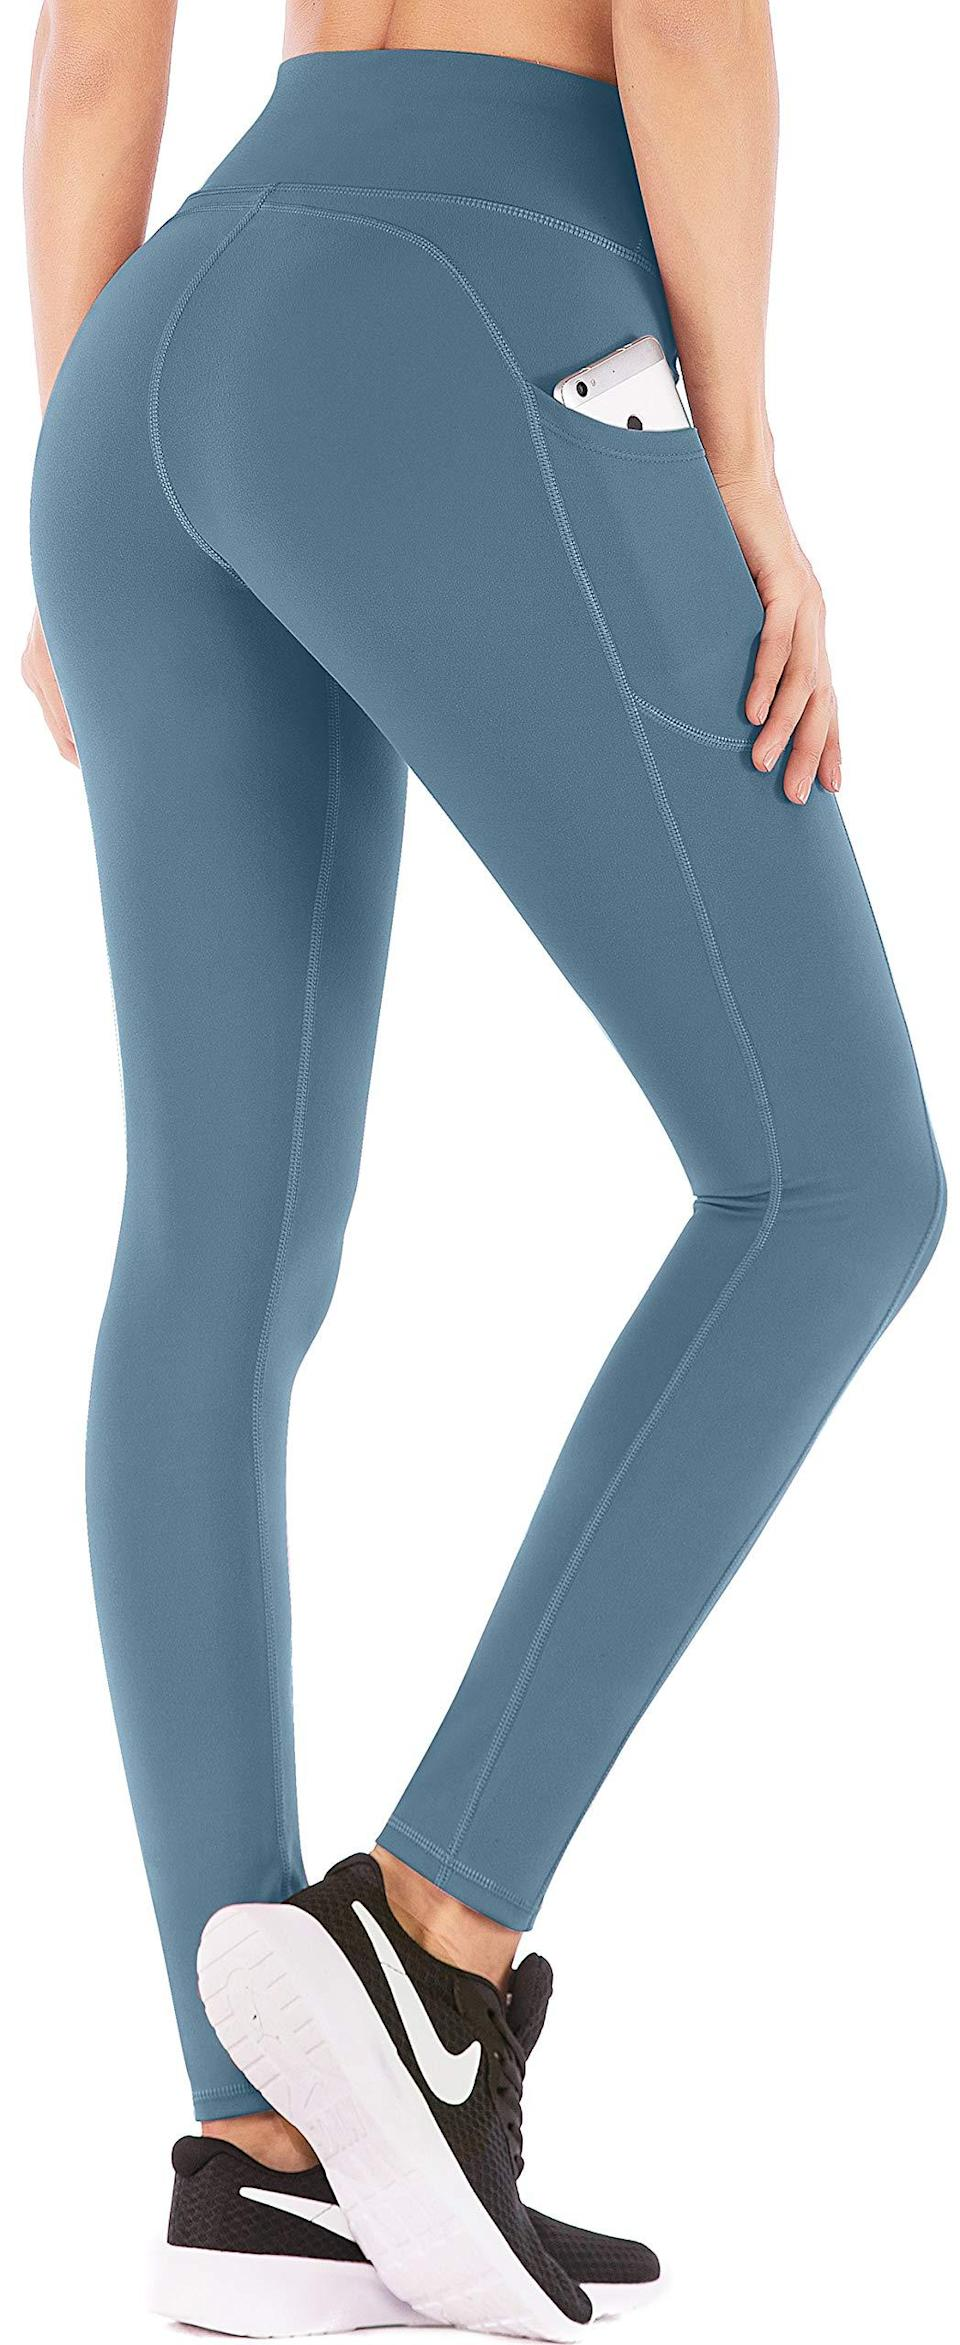 """<br><br><strong>IUGA</strong> High Waist Leggings With Pockets, $, available at <a href=""""https://amzn.to/3vy1sNT"""" rel=""""nofollow noopener"""" target=""""_blank"""" data-ylk=""""slk:Amazon"""" class=""""link rapid-noclick-resp"""">Amazon</a>"""